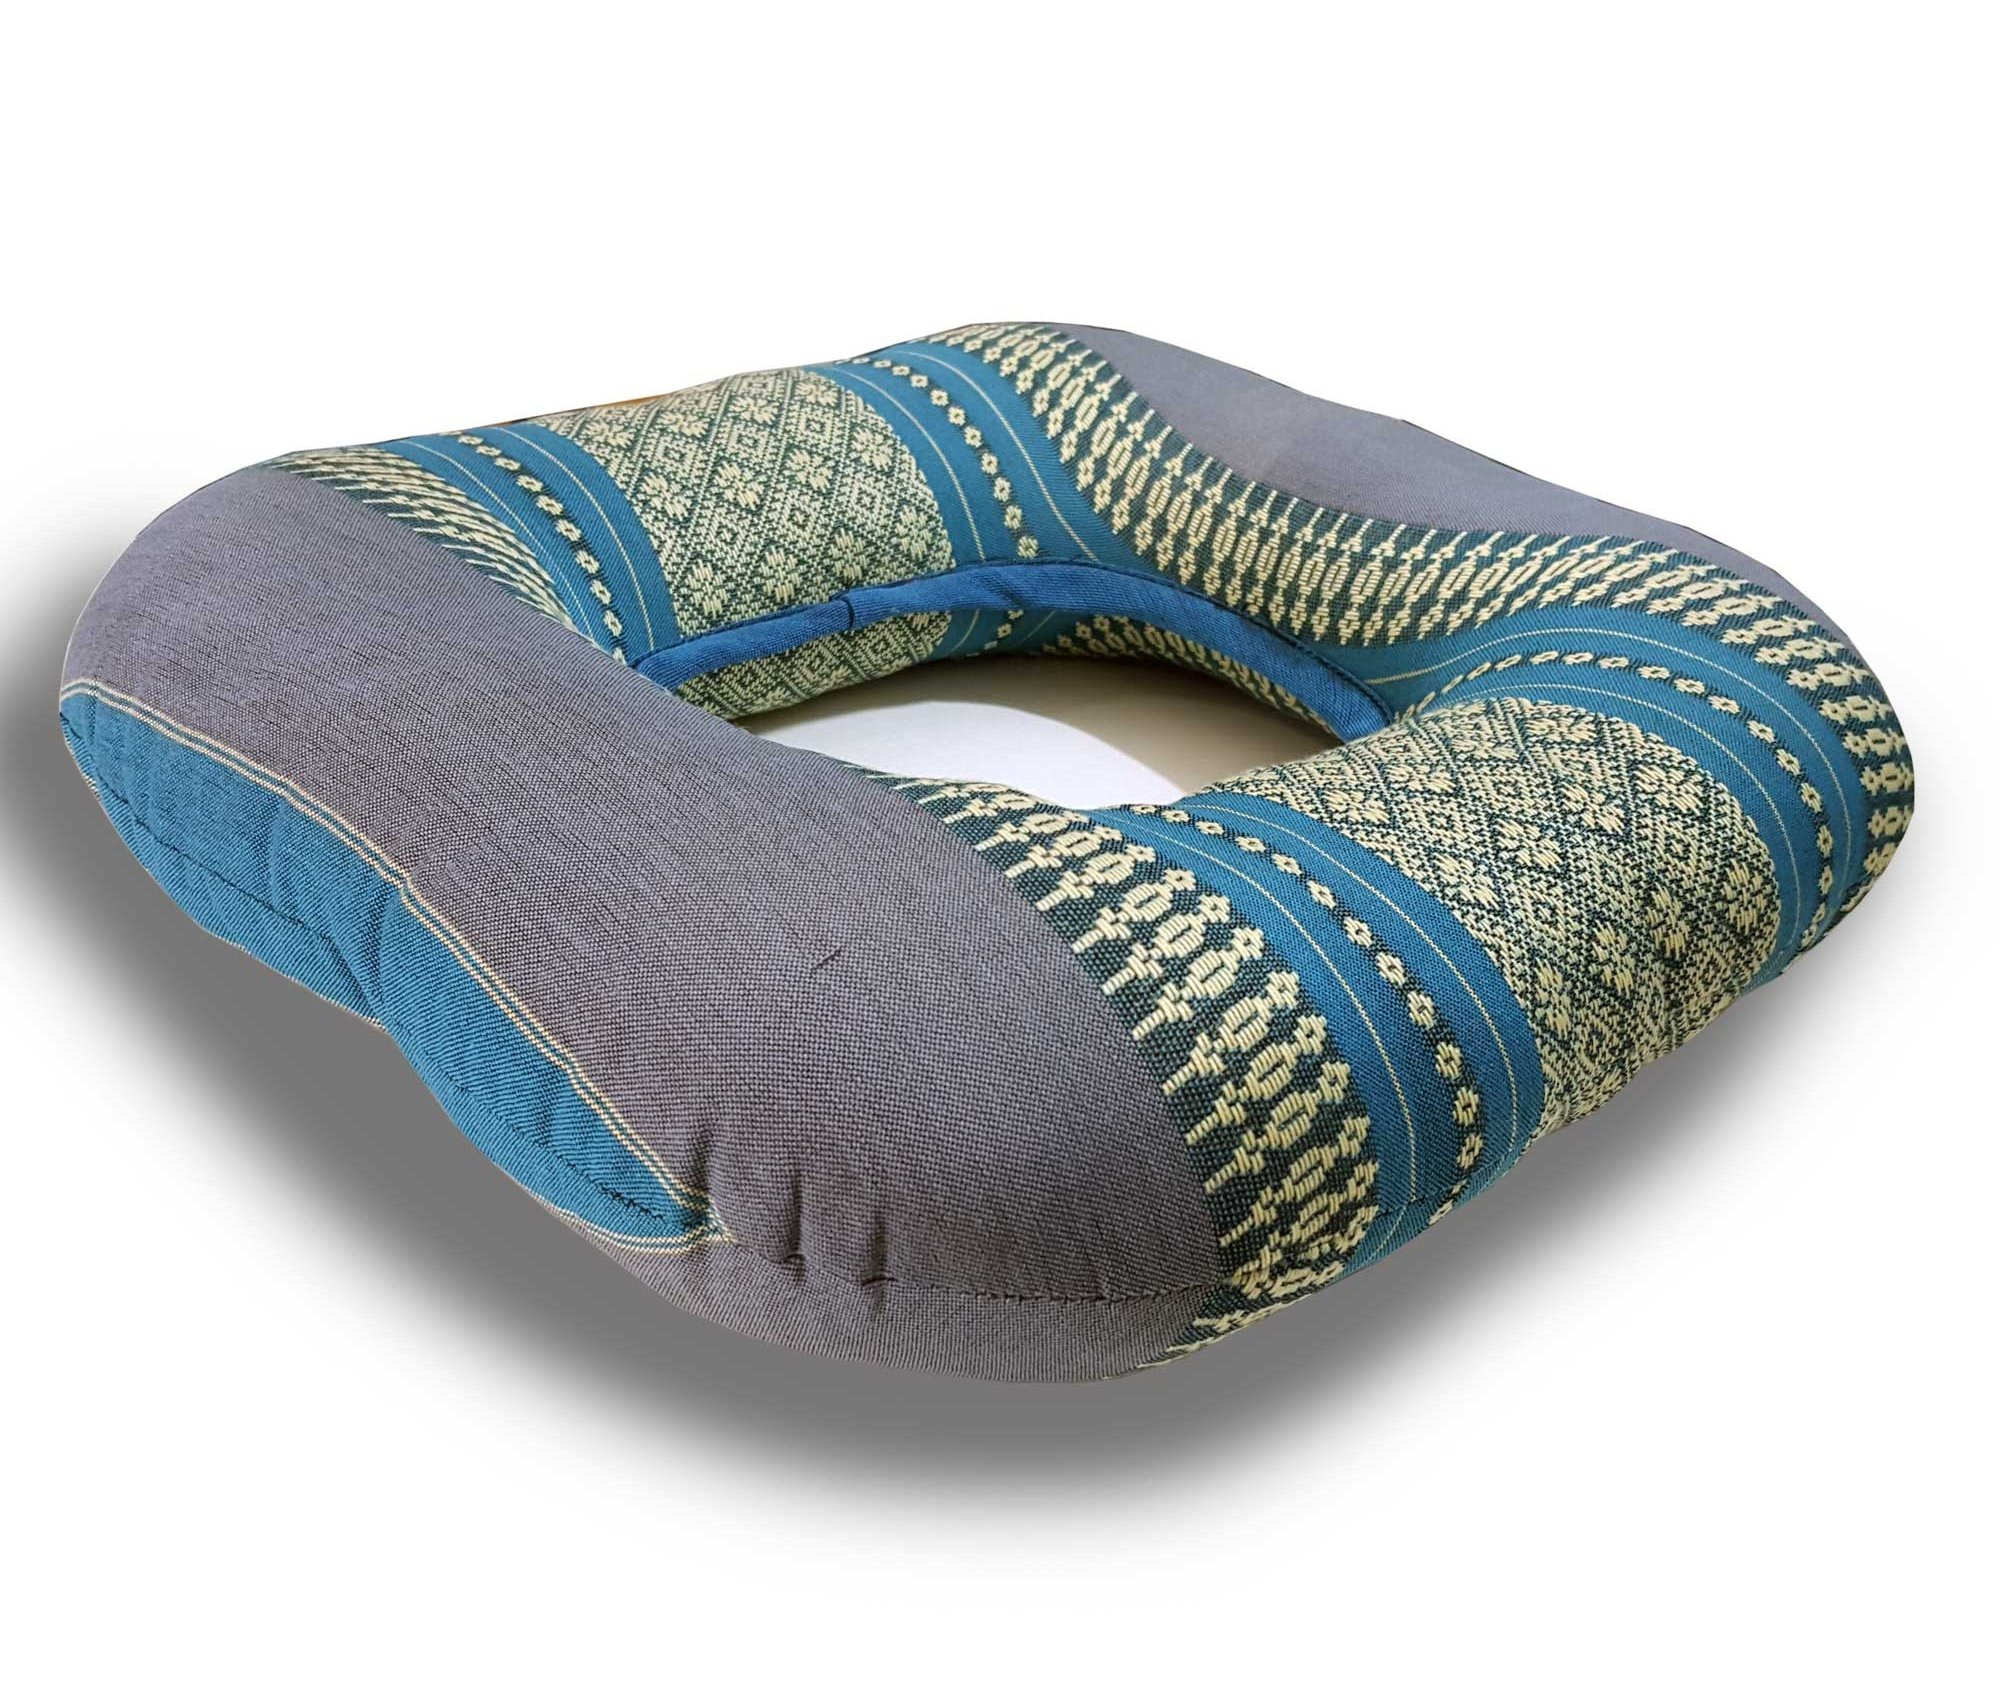 Thai handmade the donut pillow to comfort support / size 13133 inches (Aqua)